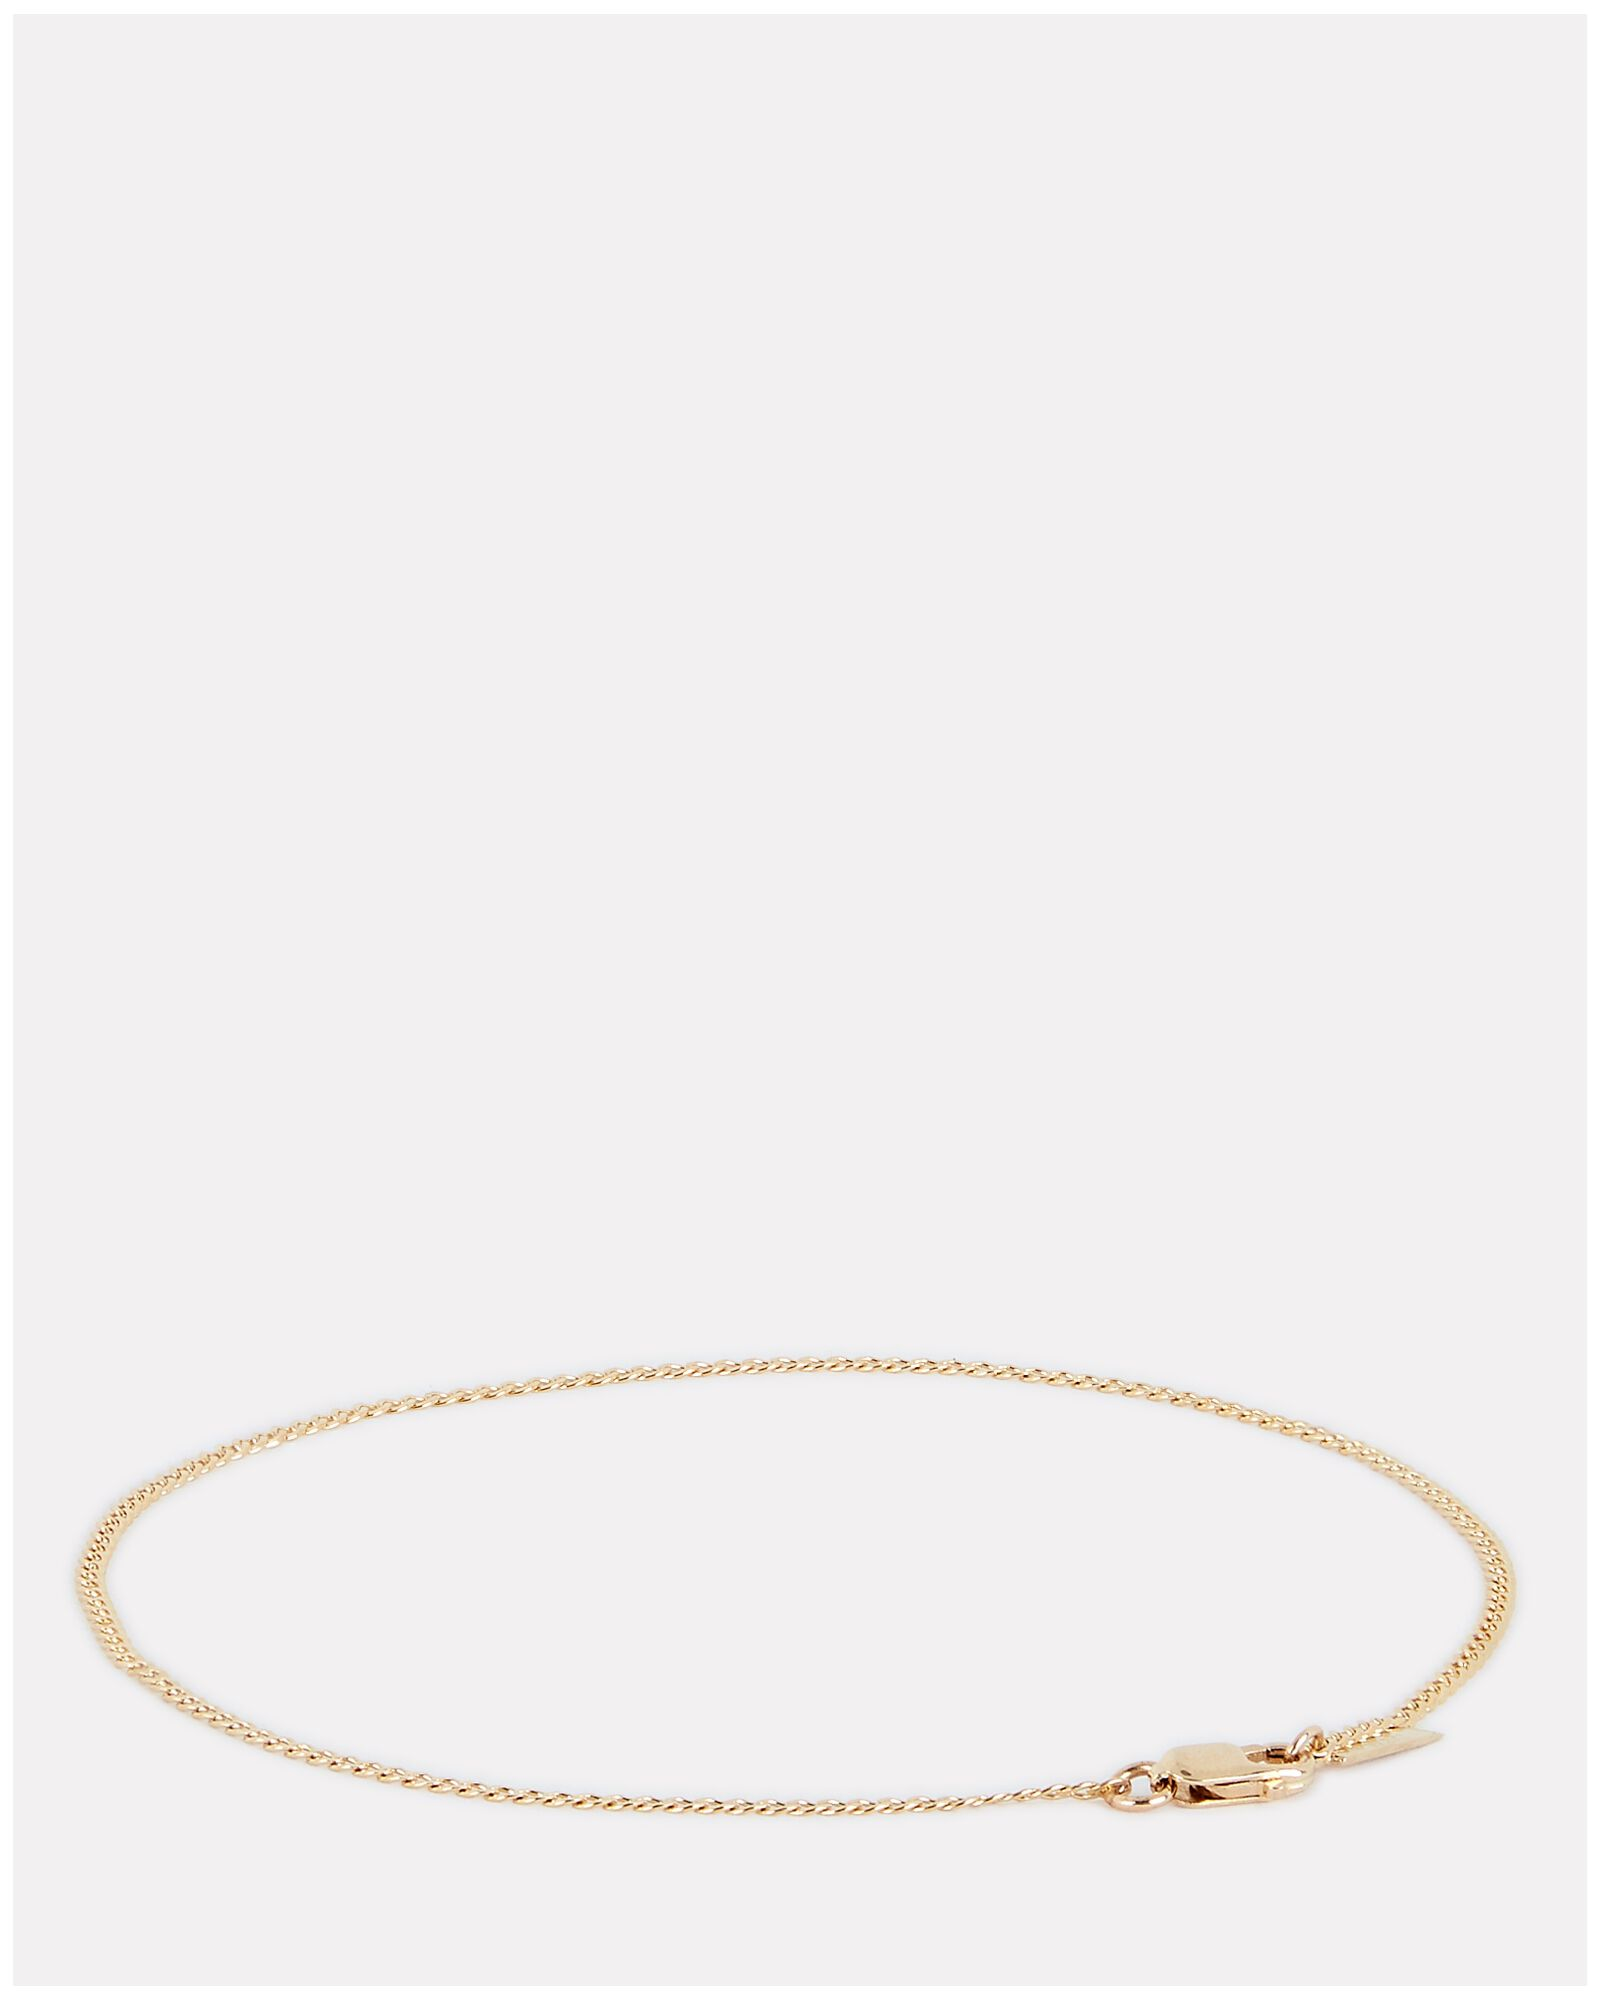 Dazzle Curb Chain Anklet, GOLD, hi-res